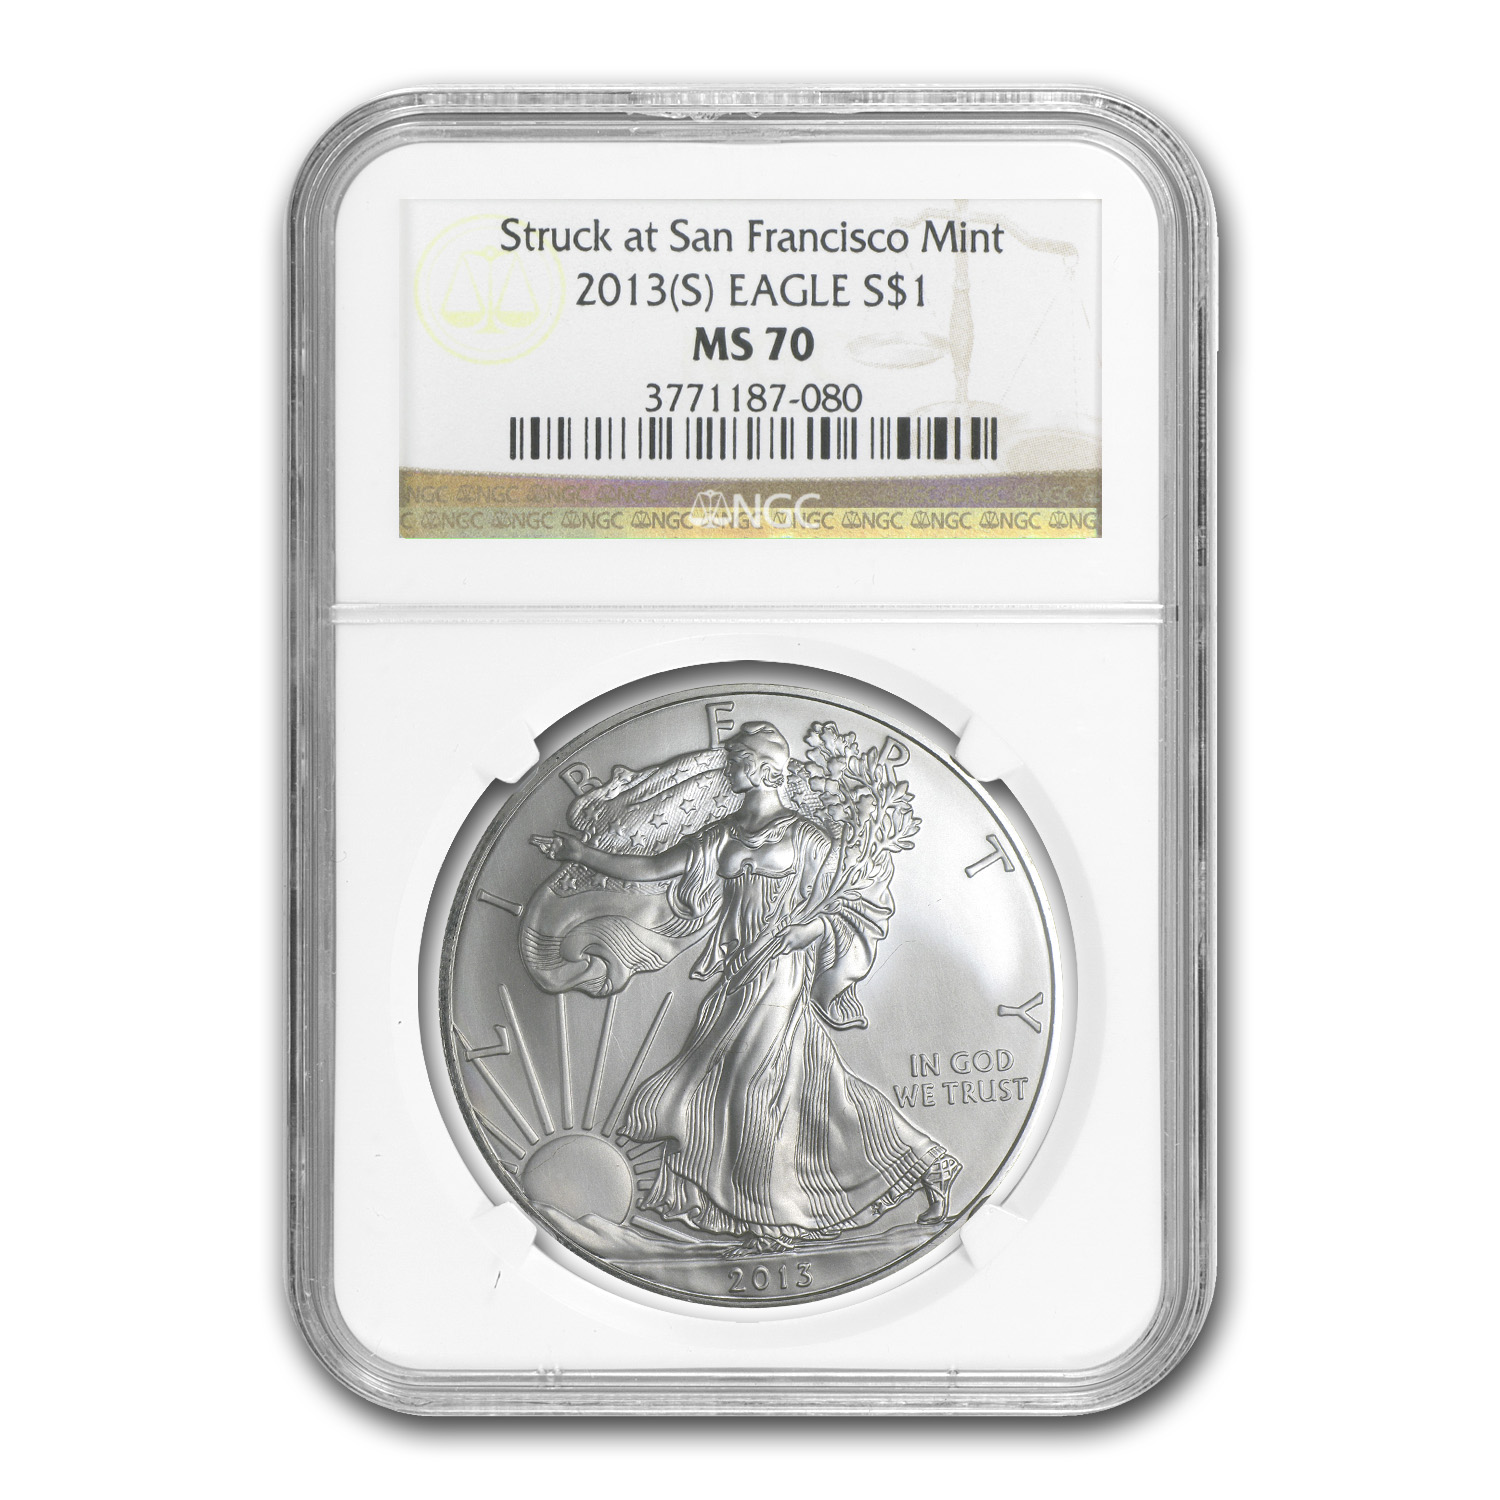 2013 (S) Silver American Eagle MS-70 NGC